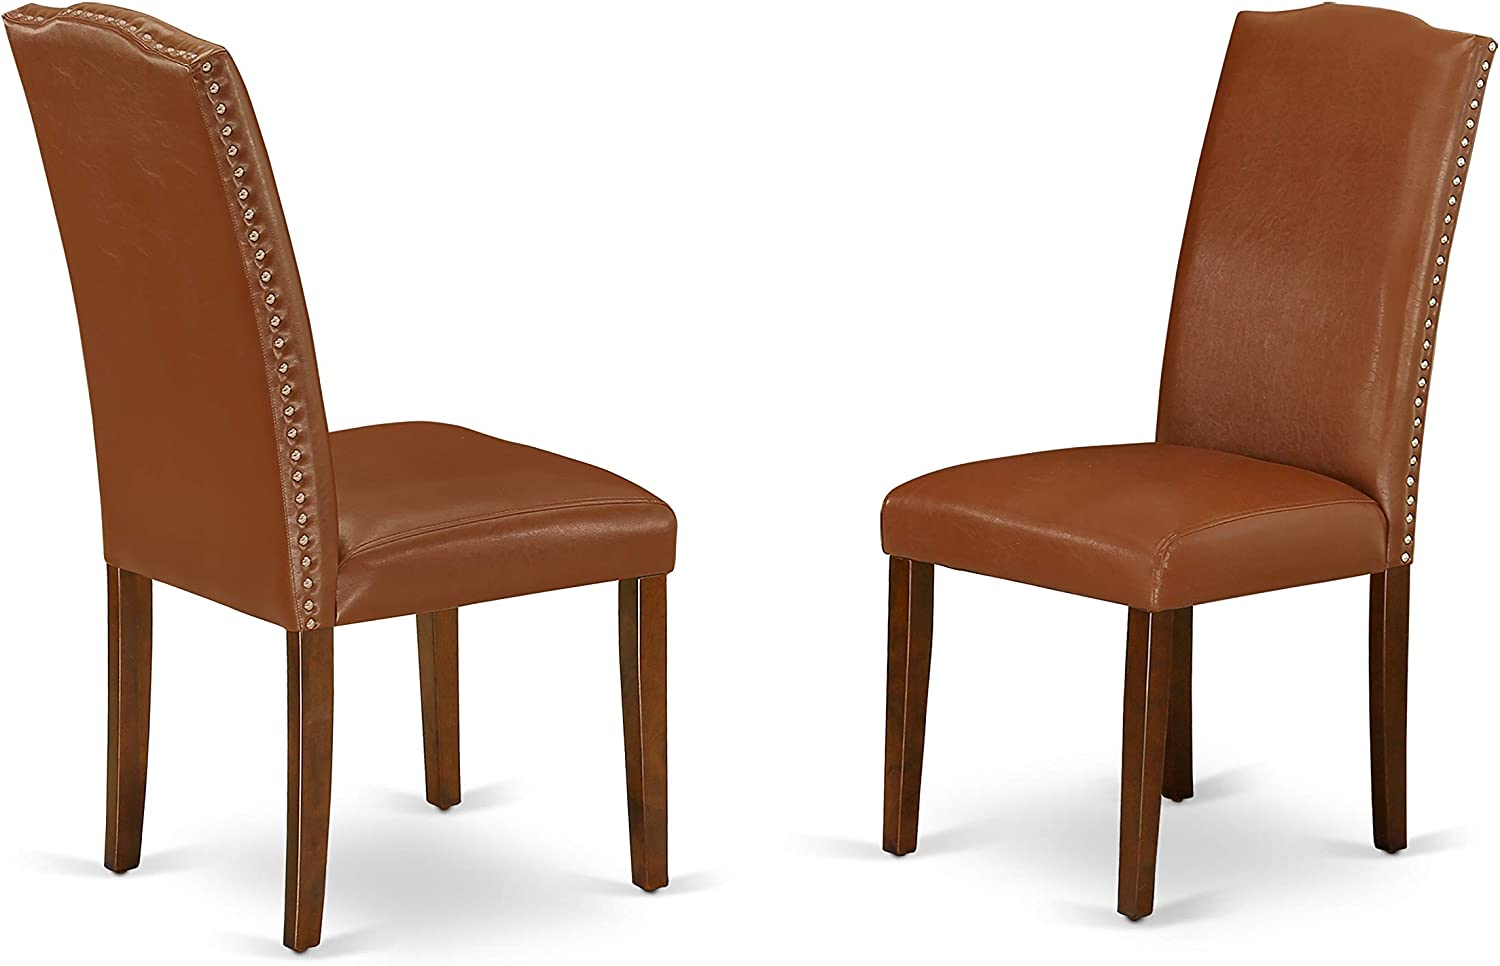 East West Furniture Padded Parson Chair Luxurious Brown Flaux Leather Hardwood Mahogany Finish Legs Modern Dining Room Chairs Set Of 2 Furniture Decor